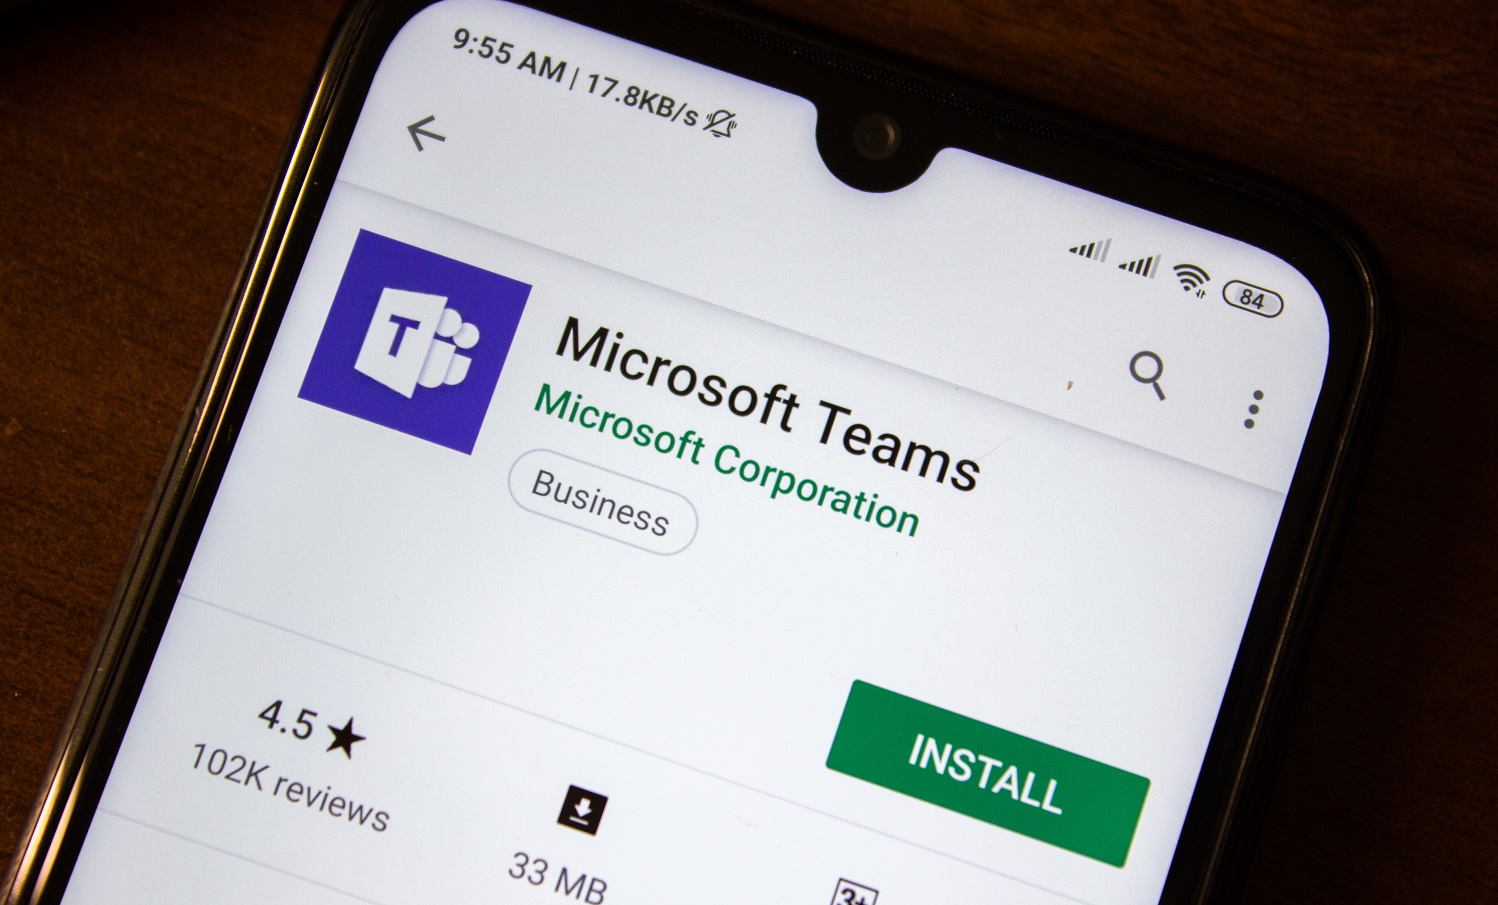 Application Microsoft Teams